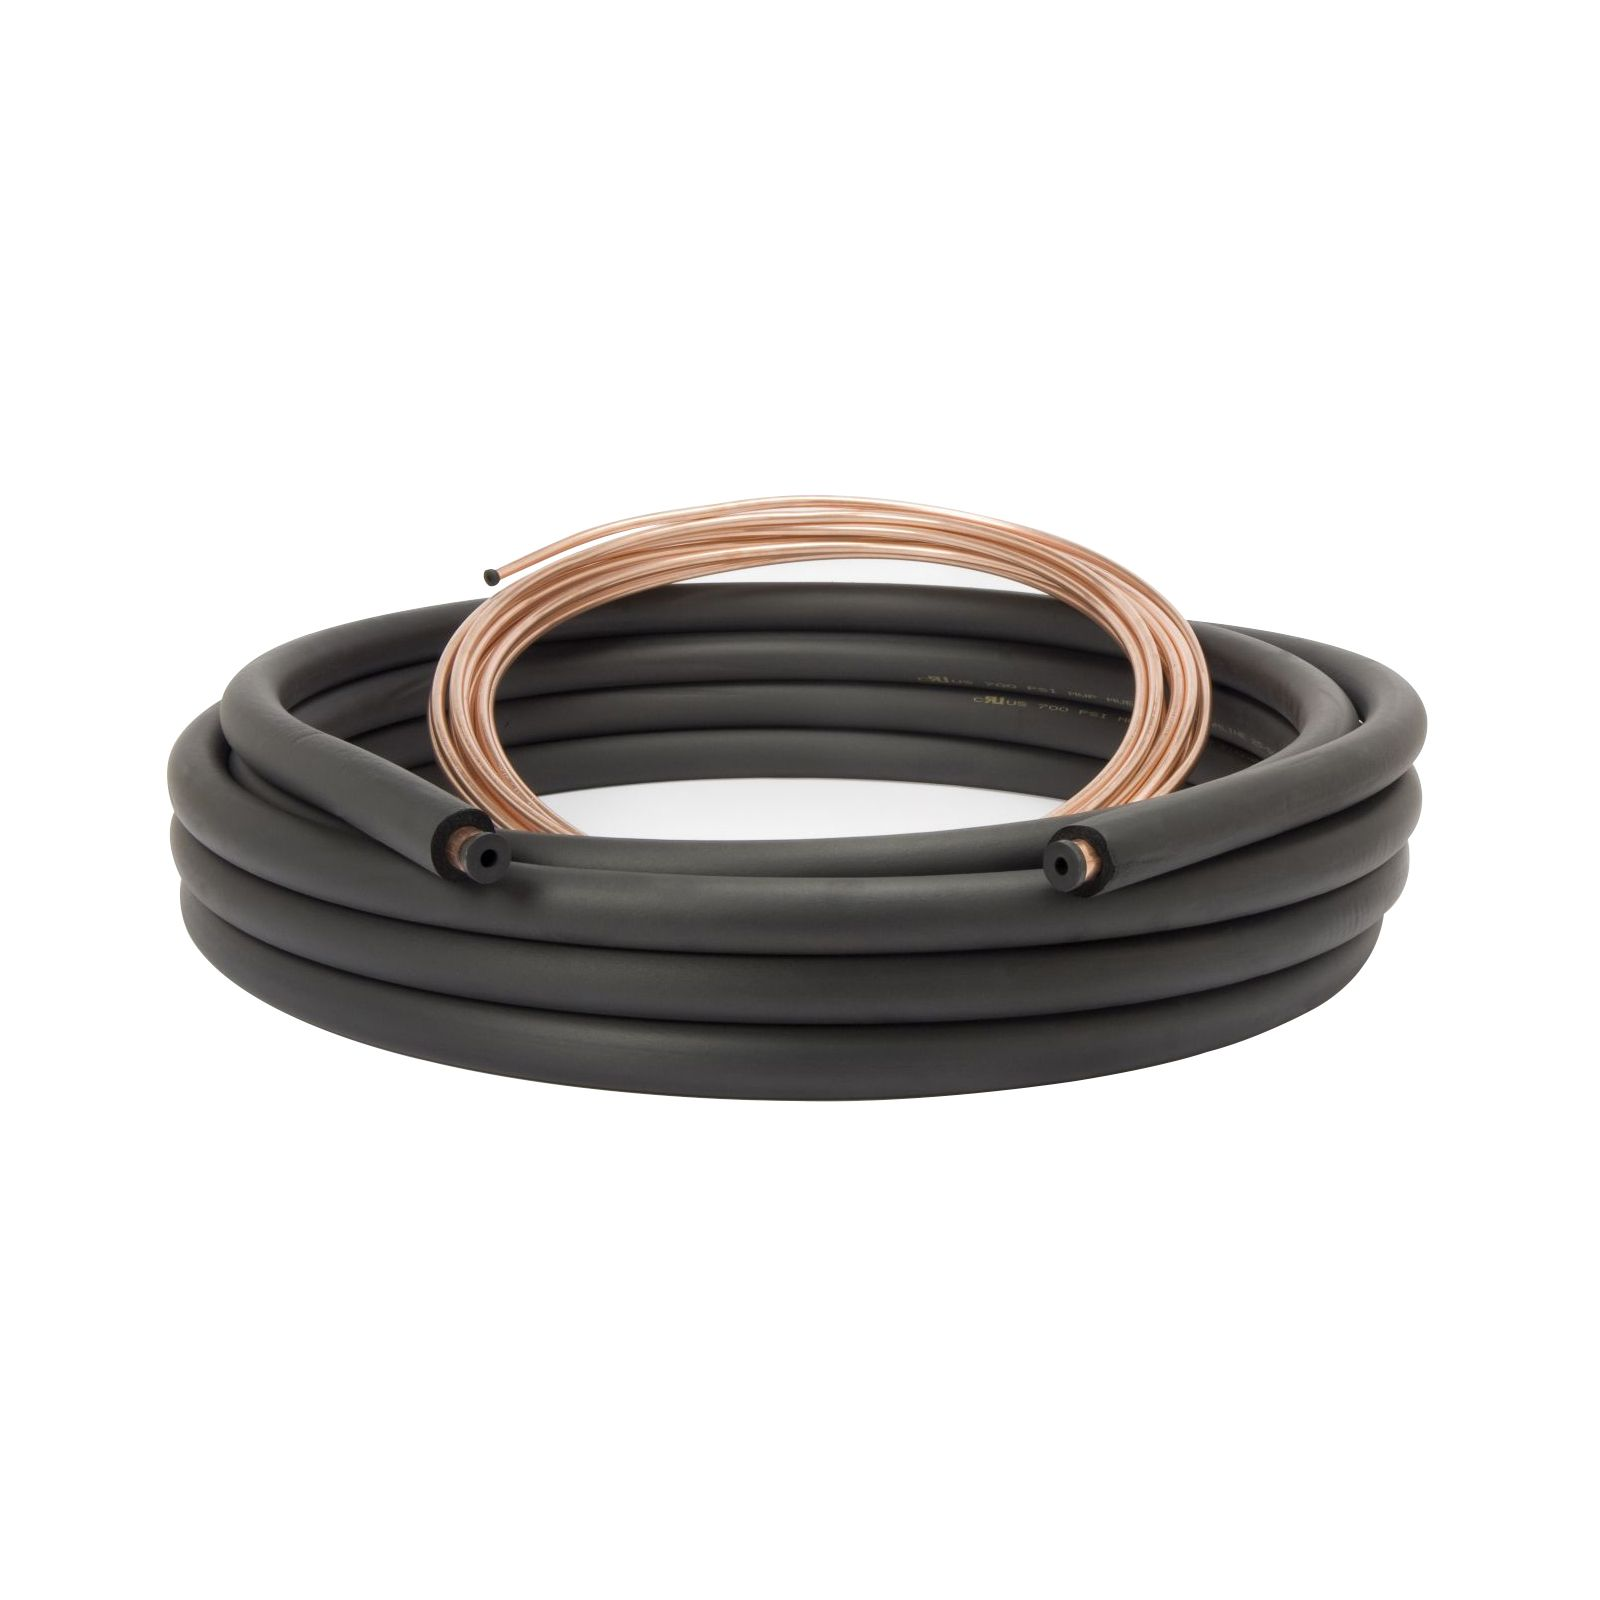 "Streamline 61220200 - Copper Line Set 3/8"" x 3/4"" x 1/2"" Insulation, 20' Length I.D."